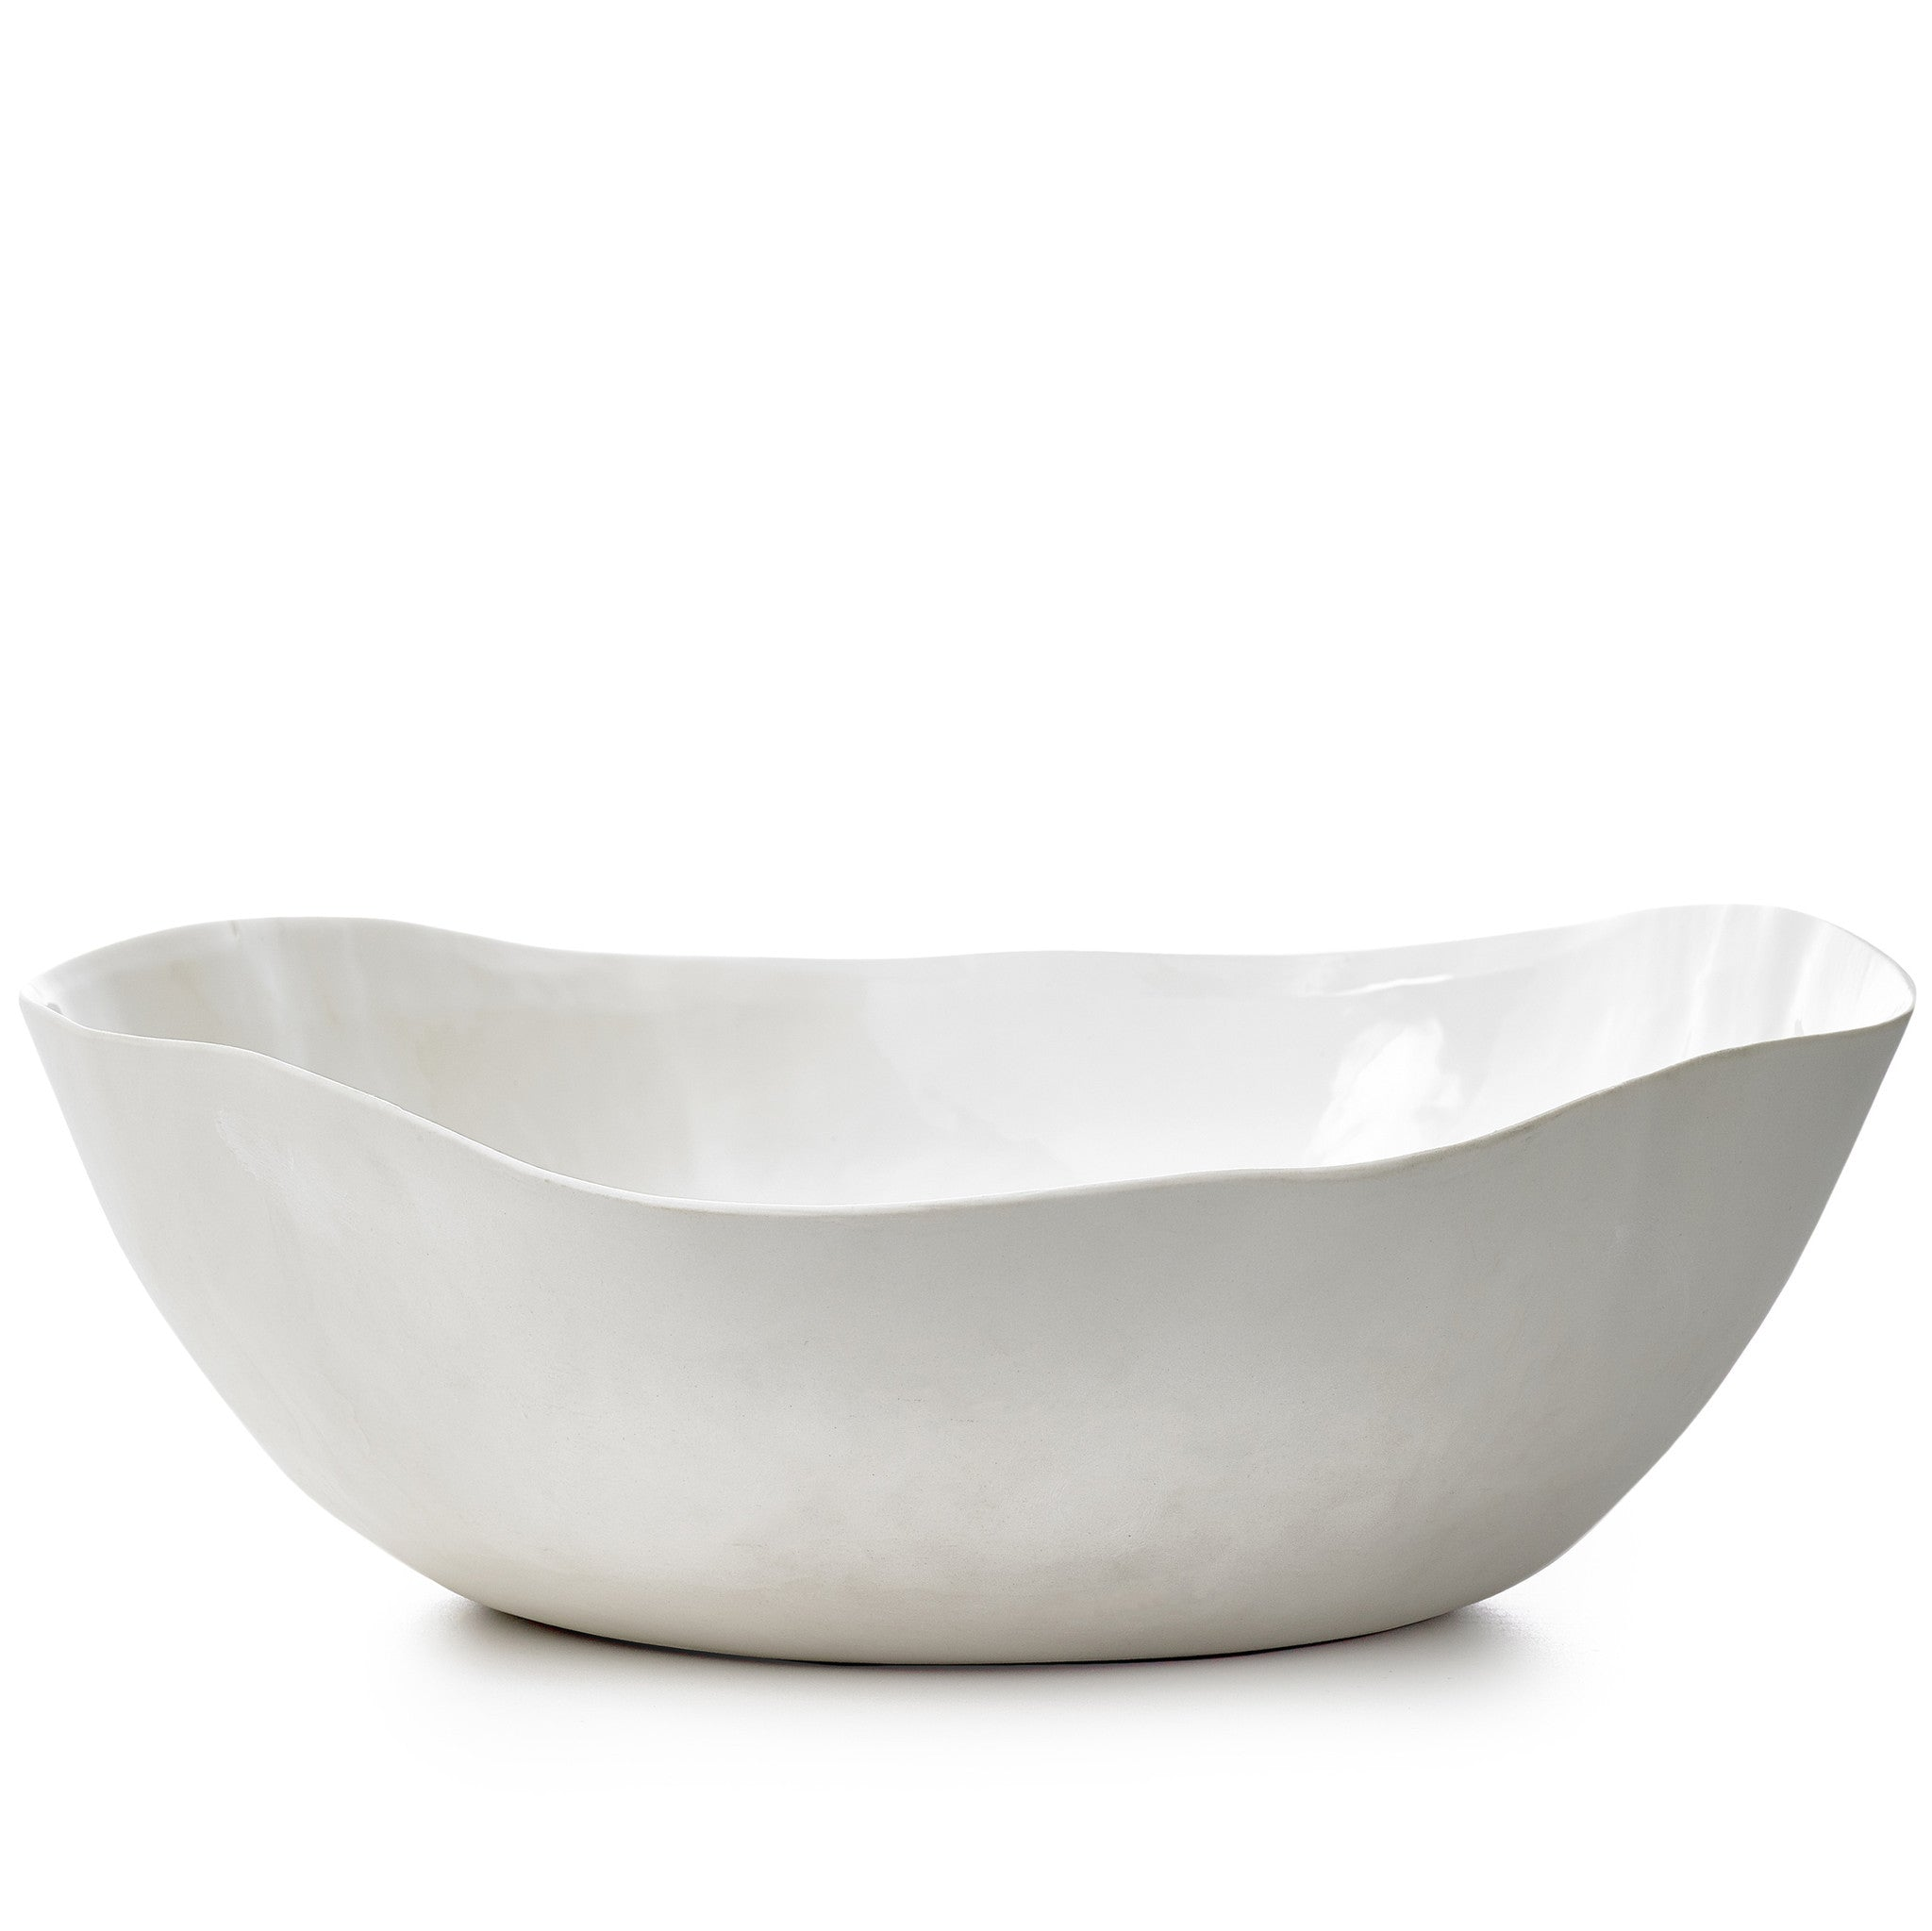 S&B Handmade 43cm Porcelain Extra Large Salad Bowl with Plain Rim